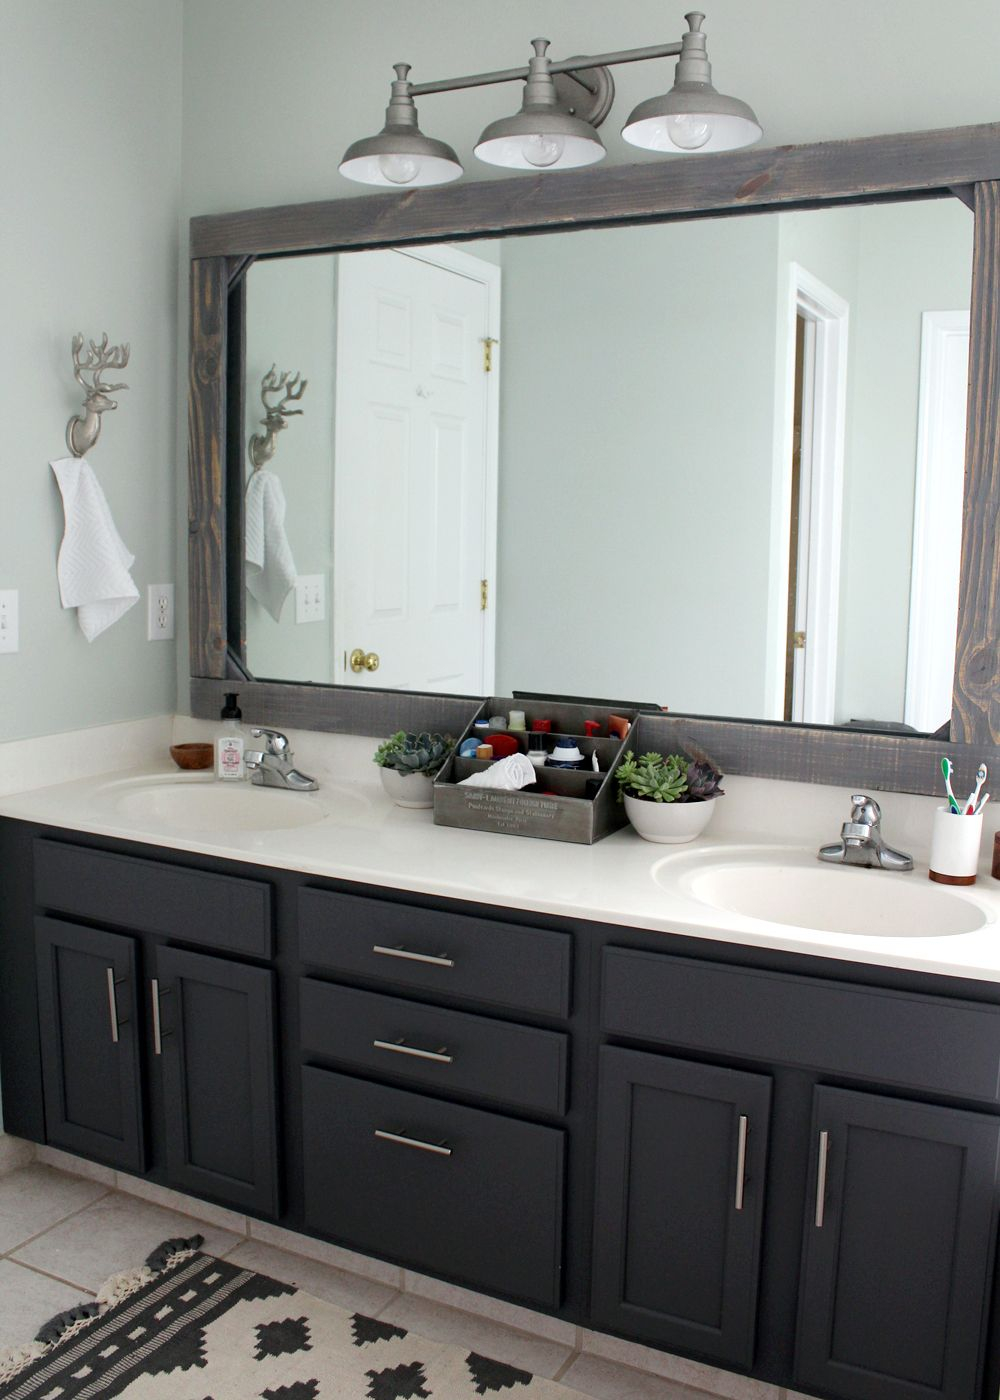 Fancy $300 Master Bathroom Remodel | Pinterest | Master Bathrooms regarding Inexpensive Bathroom Remodel